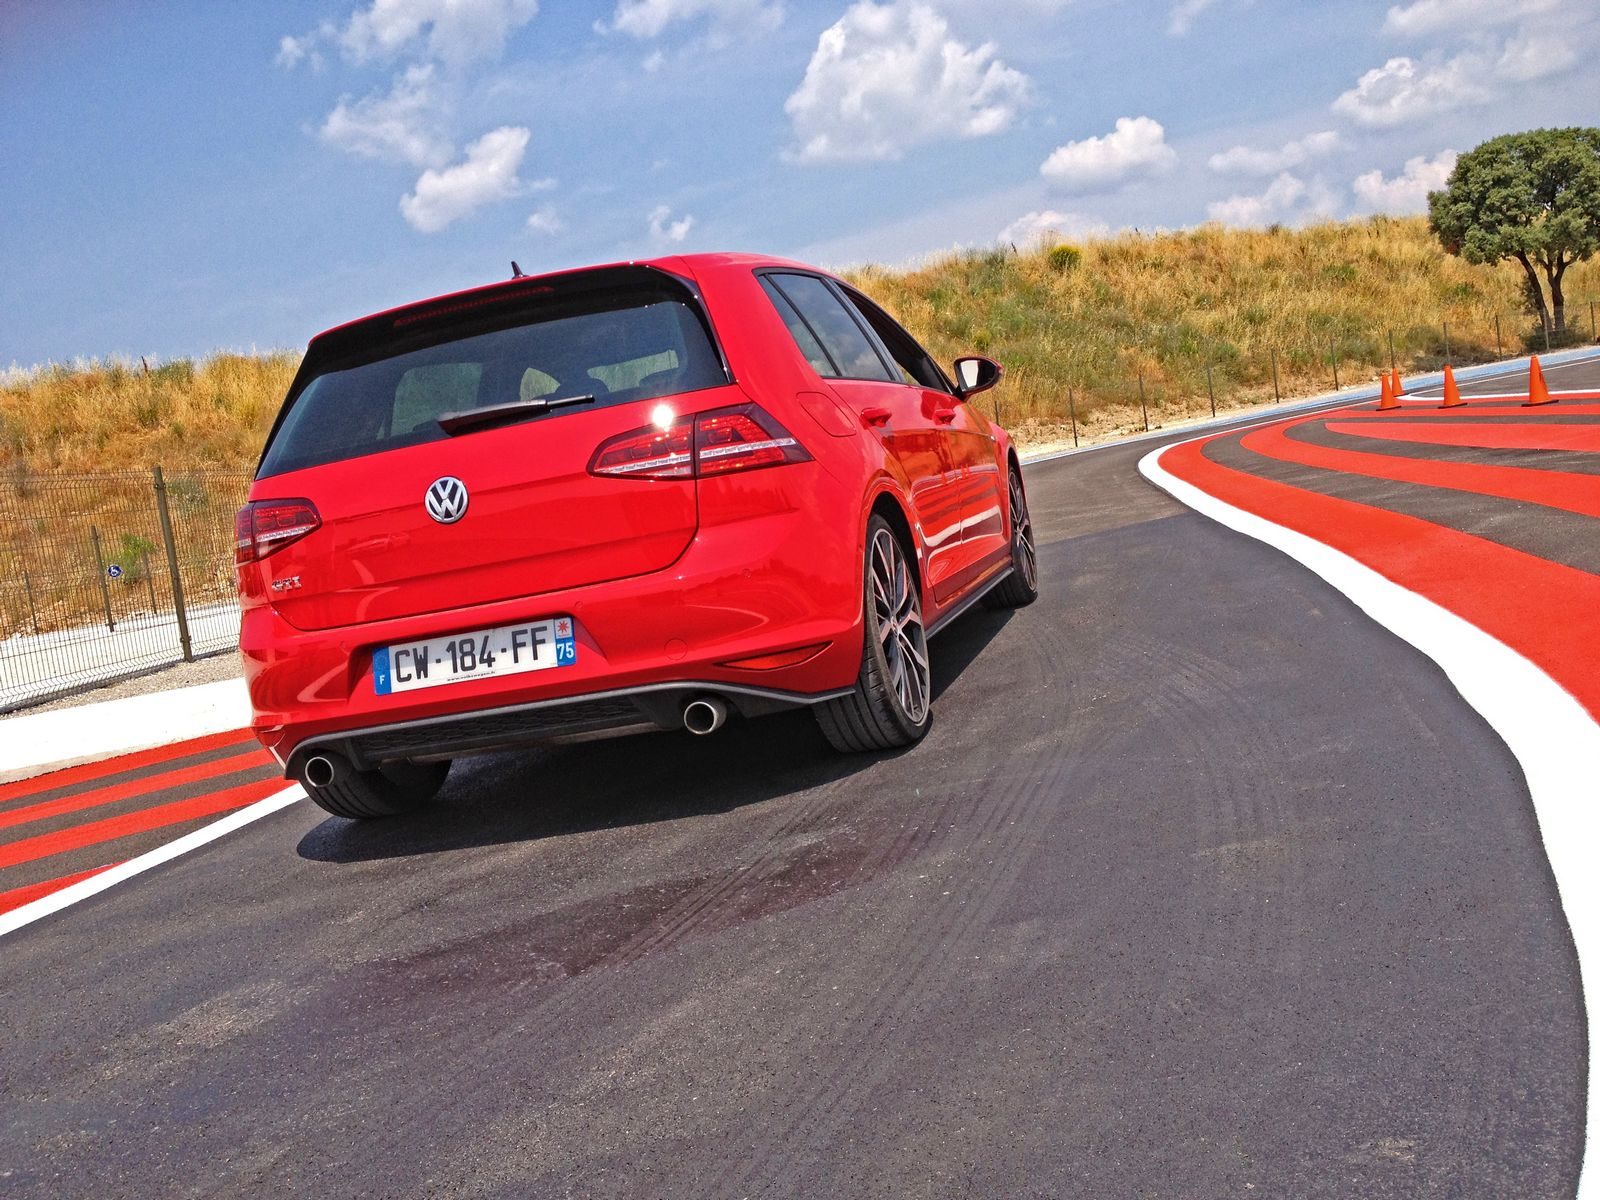 les volkswagen golf 7 gti gtd l 39 essai sur circuit. Black Bedroom Furniture Sets. Home Design Ideas